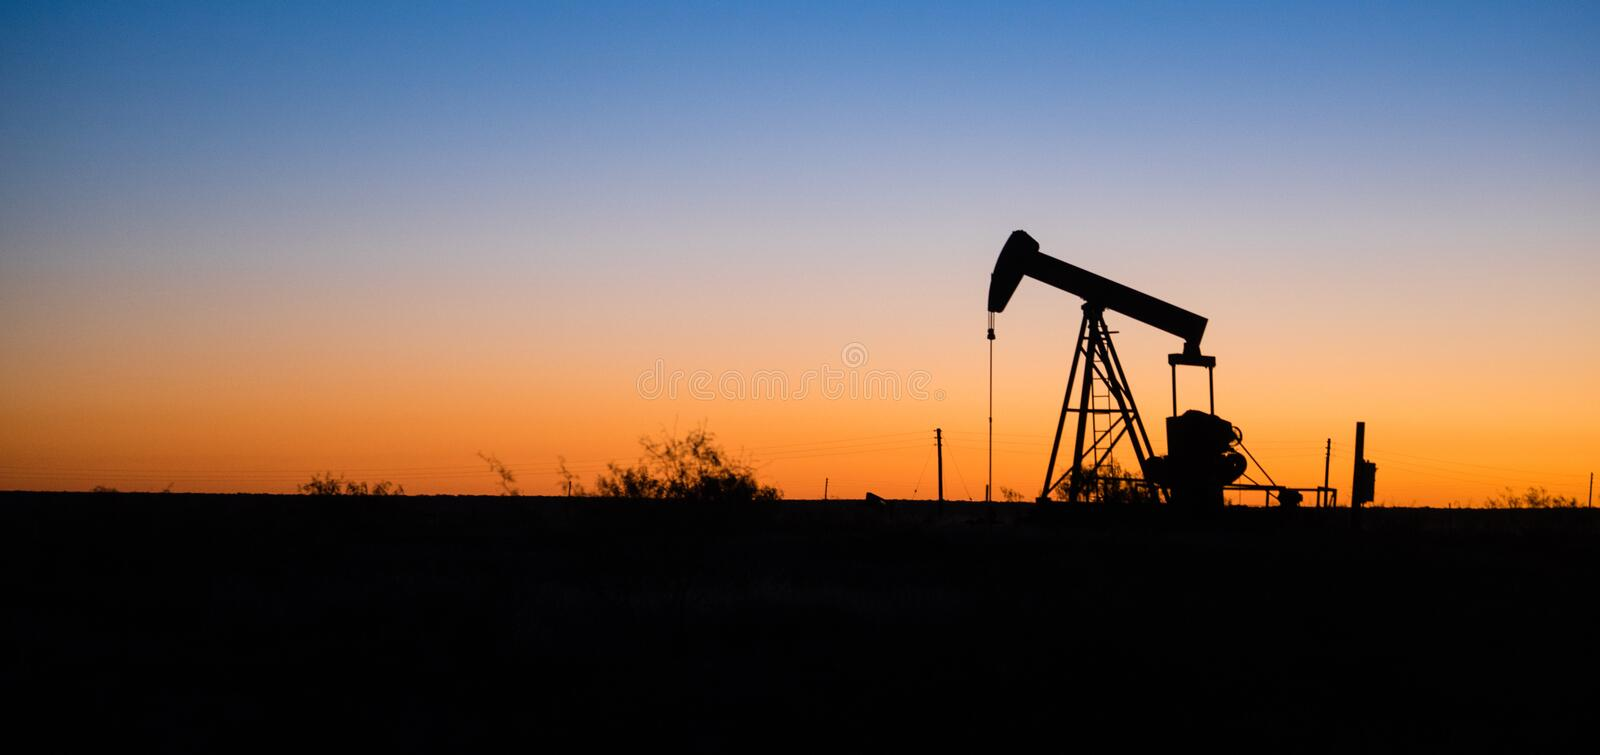 Texas Oil Pump Jack Fracking Crude Extraction Machine Sunset. A device used for oil exploration in Texas stock image